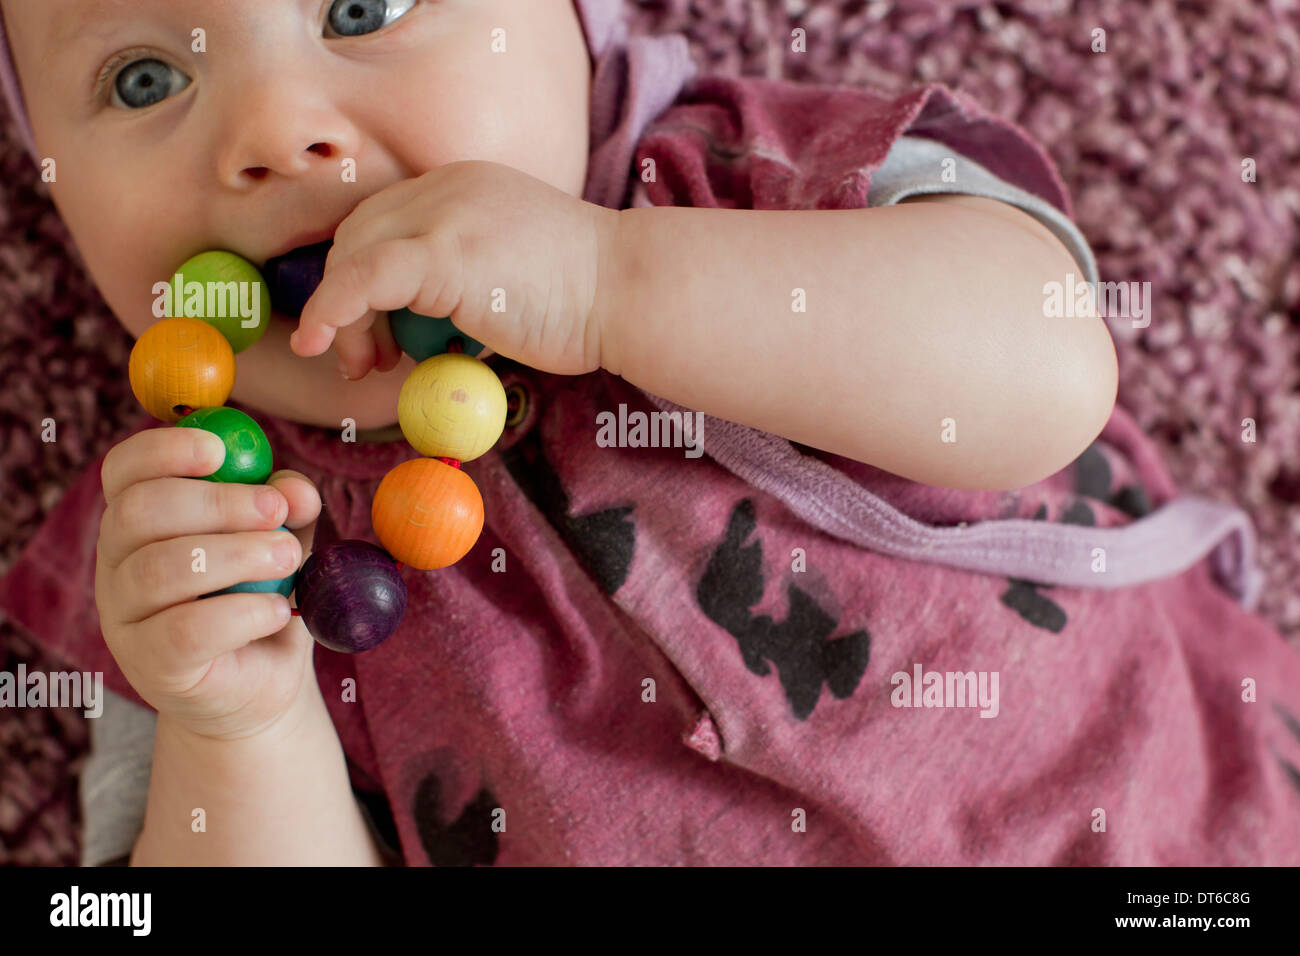 Baby girl with teething toy - Stock Image